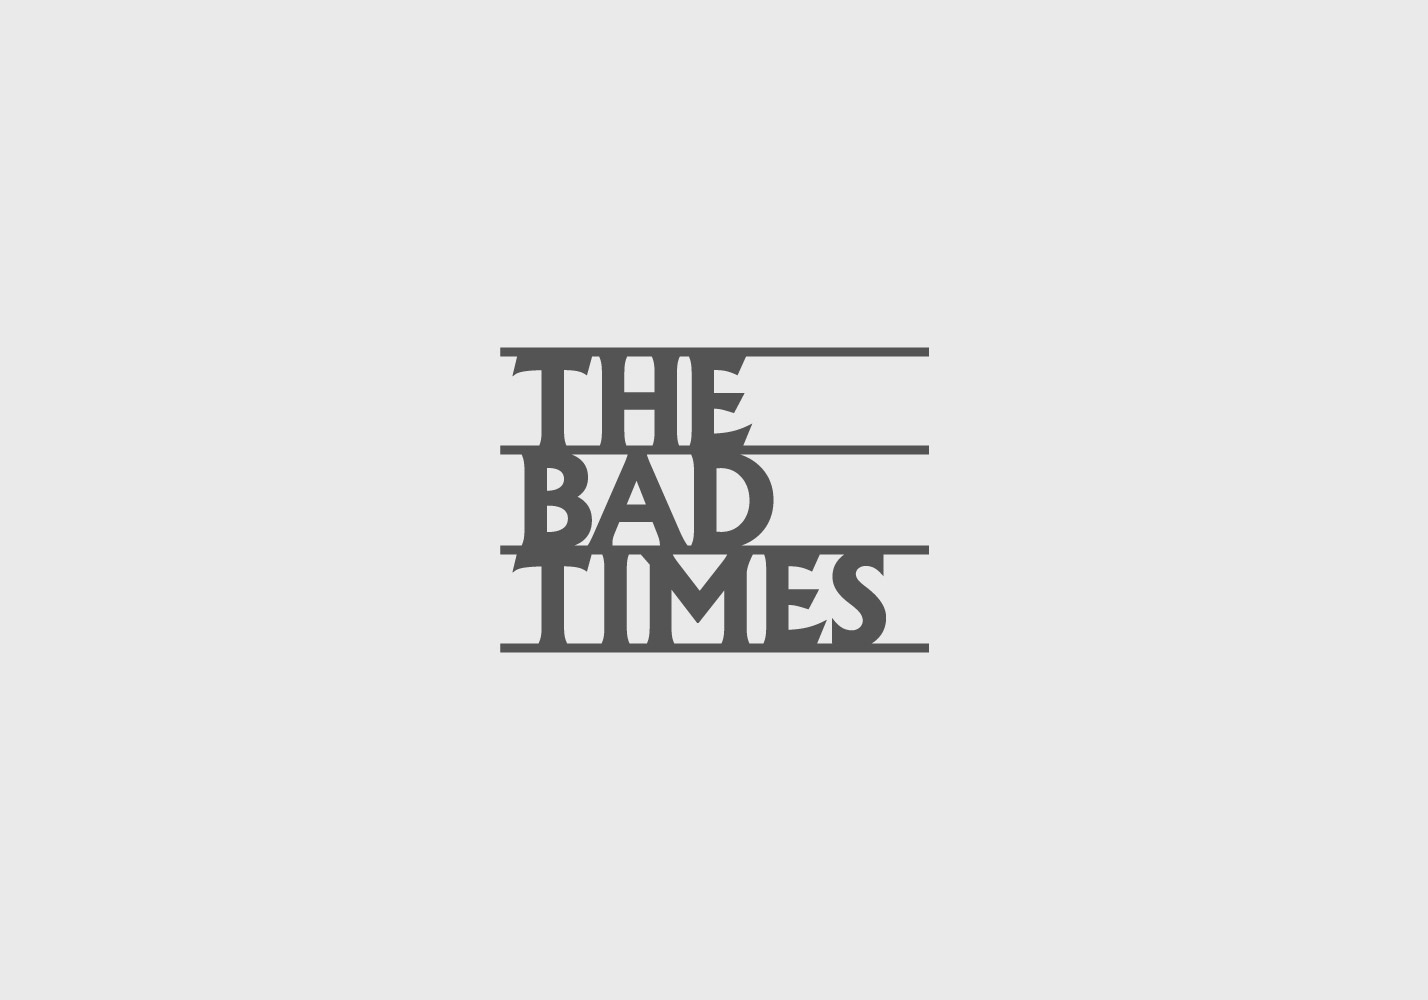 Cover image: The Bad Times